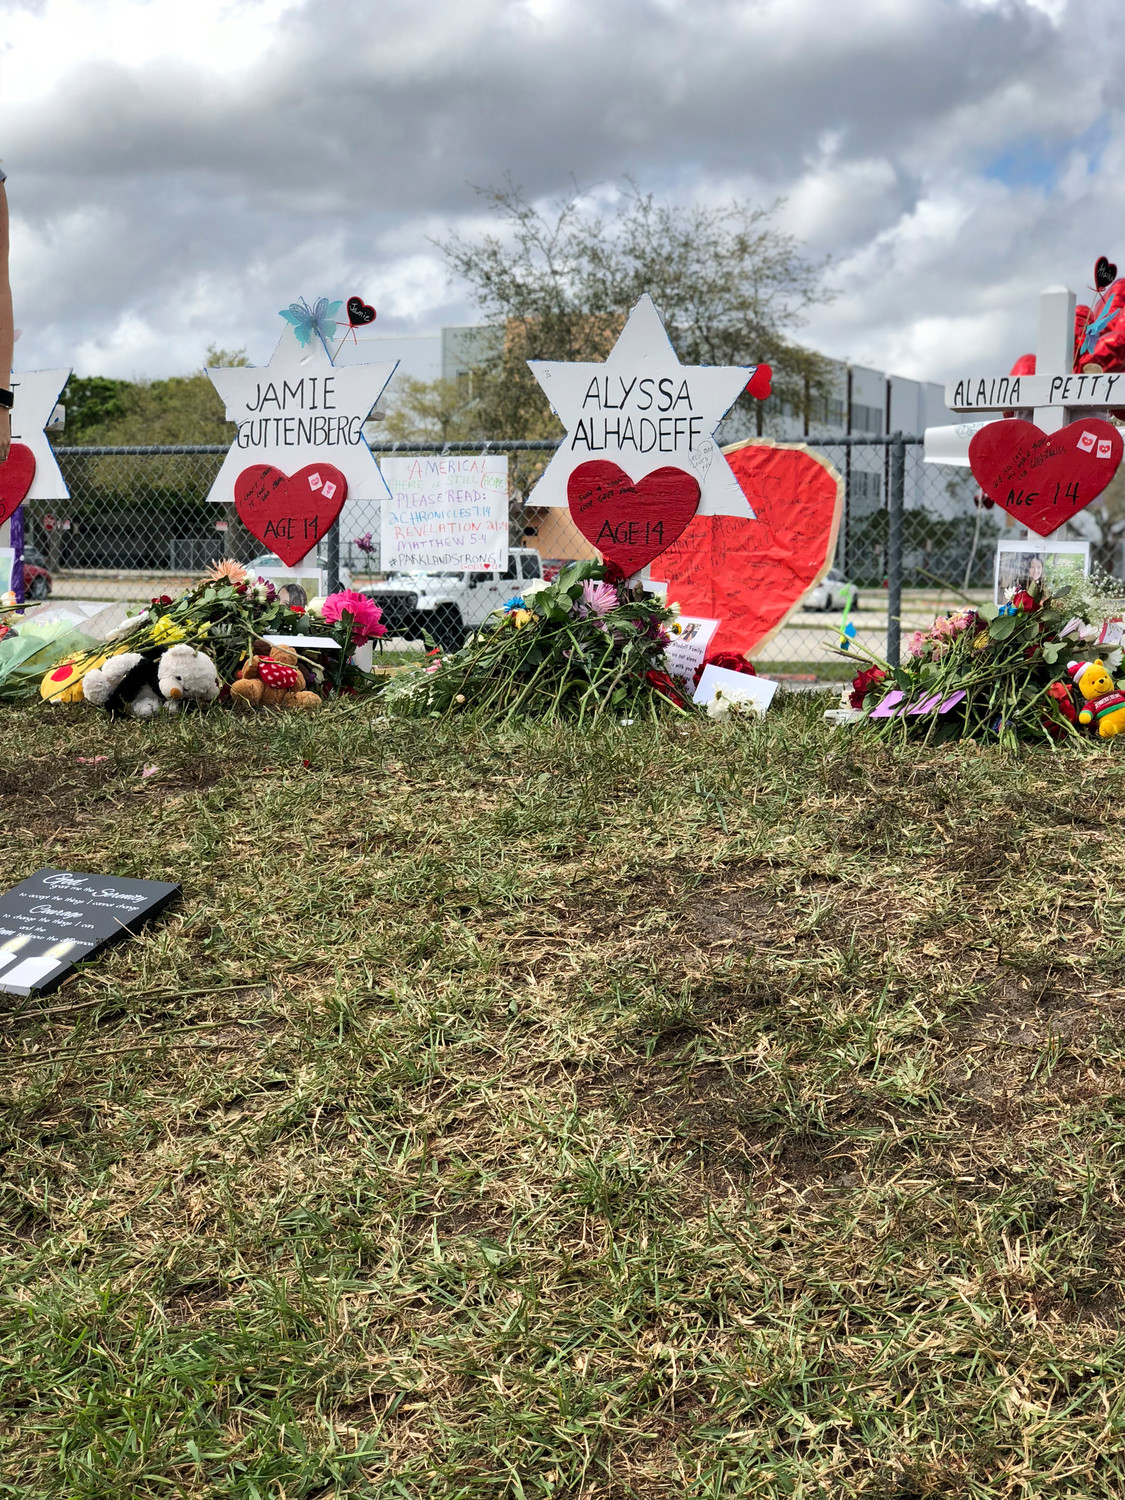 A vigil was held at Marjory Stoneman Douglas High School after the shooting on Feb. 14 in which 17 people died.